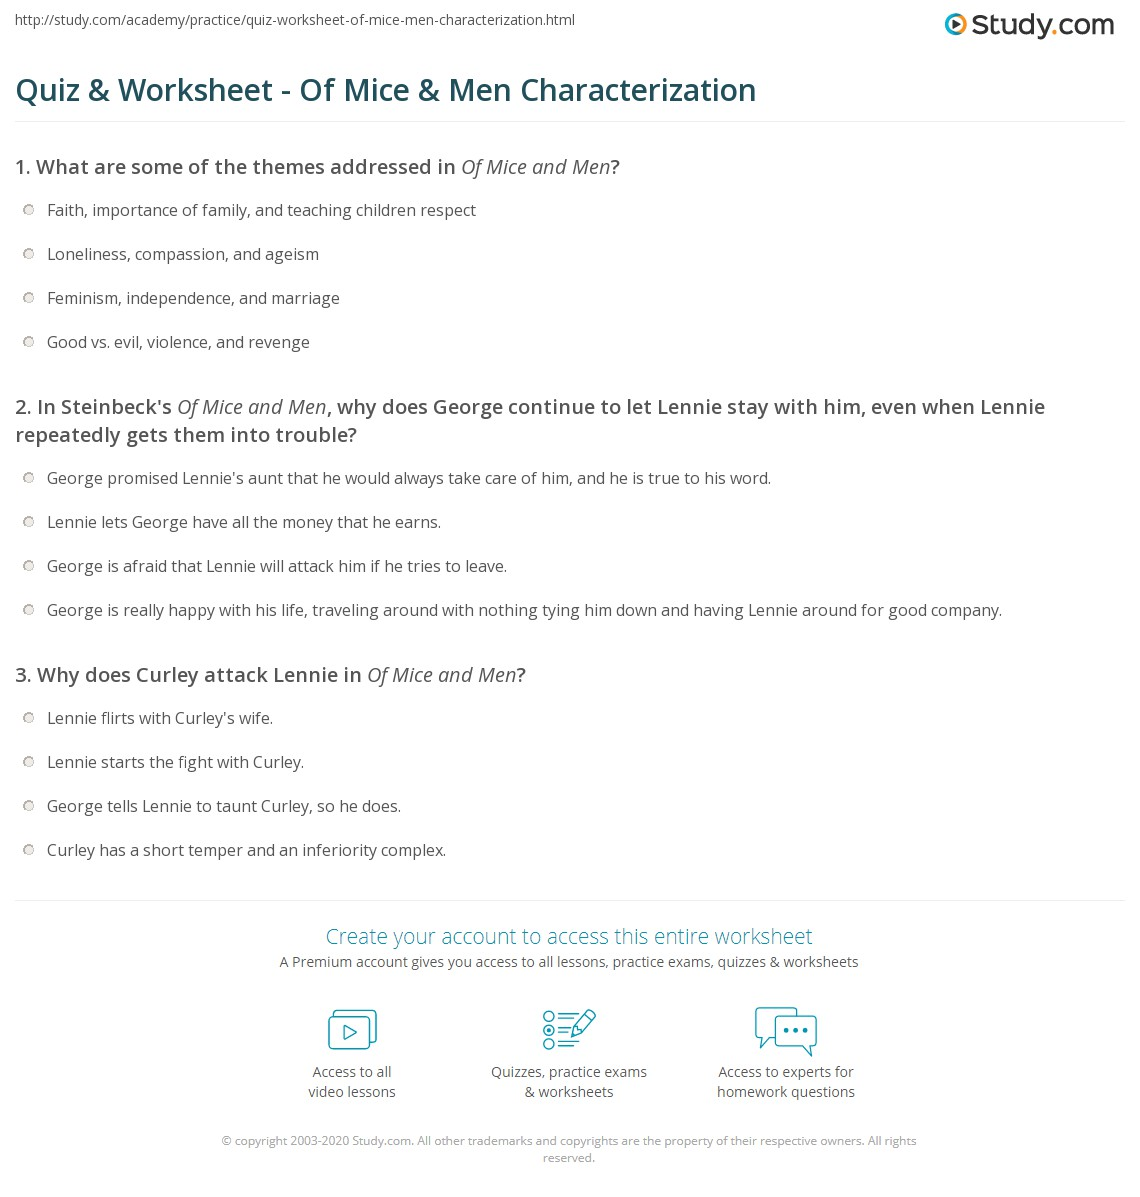 essays of mice and men of mice and men by john steinbeck ks prose  quiz worksheet of mice men characterization com print characterization in of mice men worksheet crooks loneliness essay